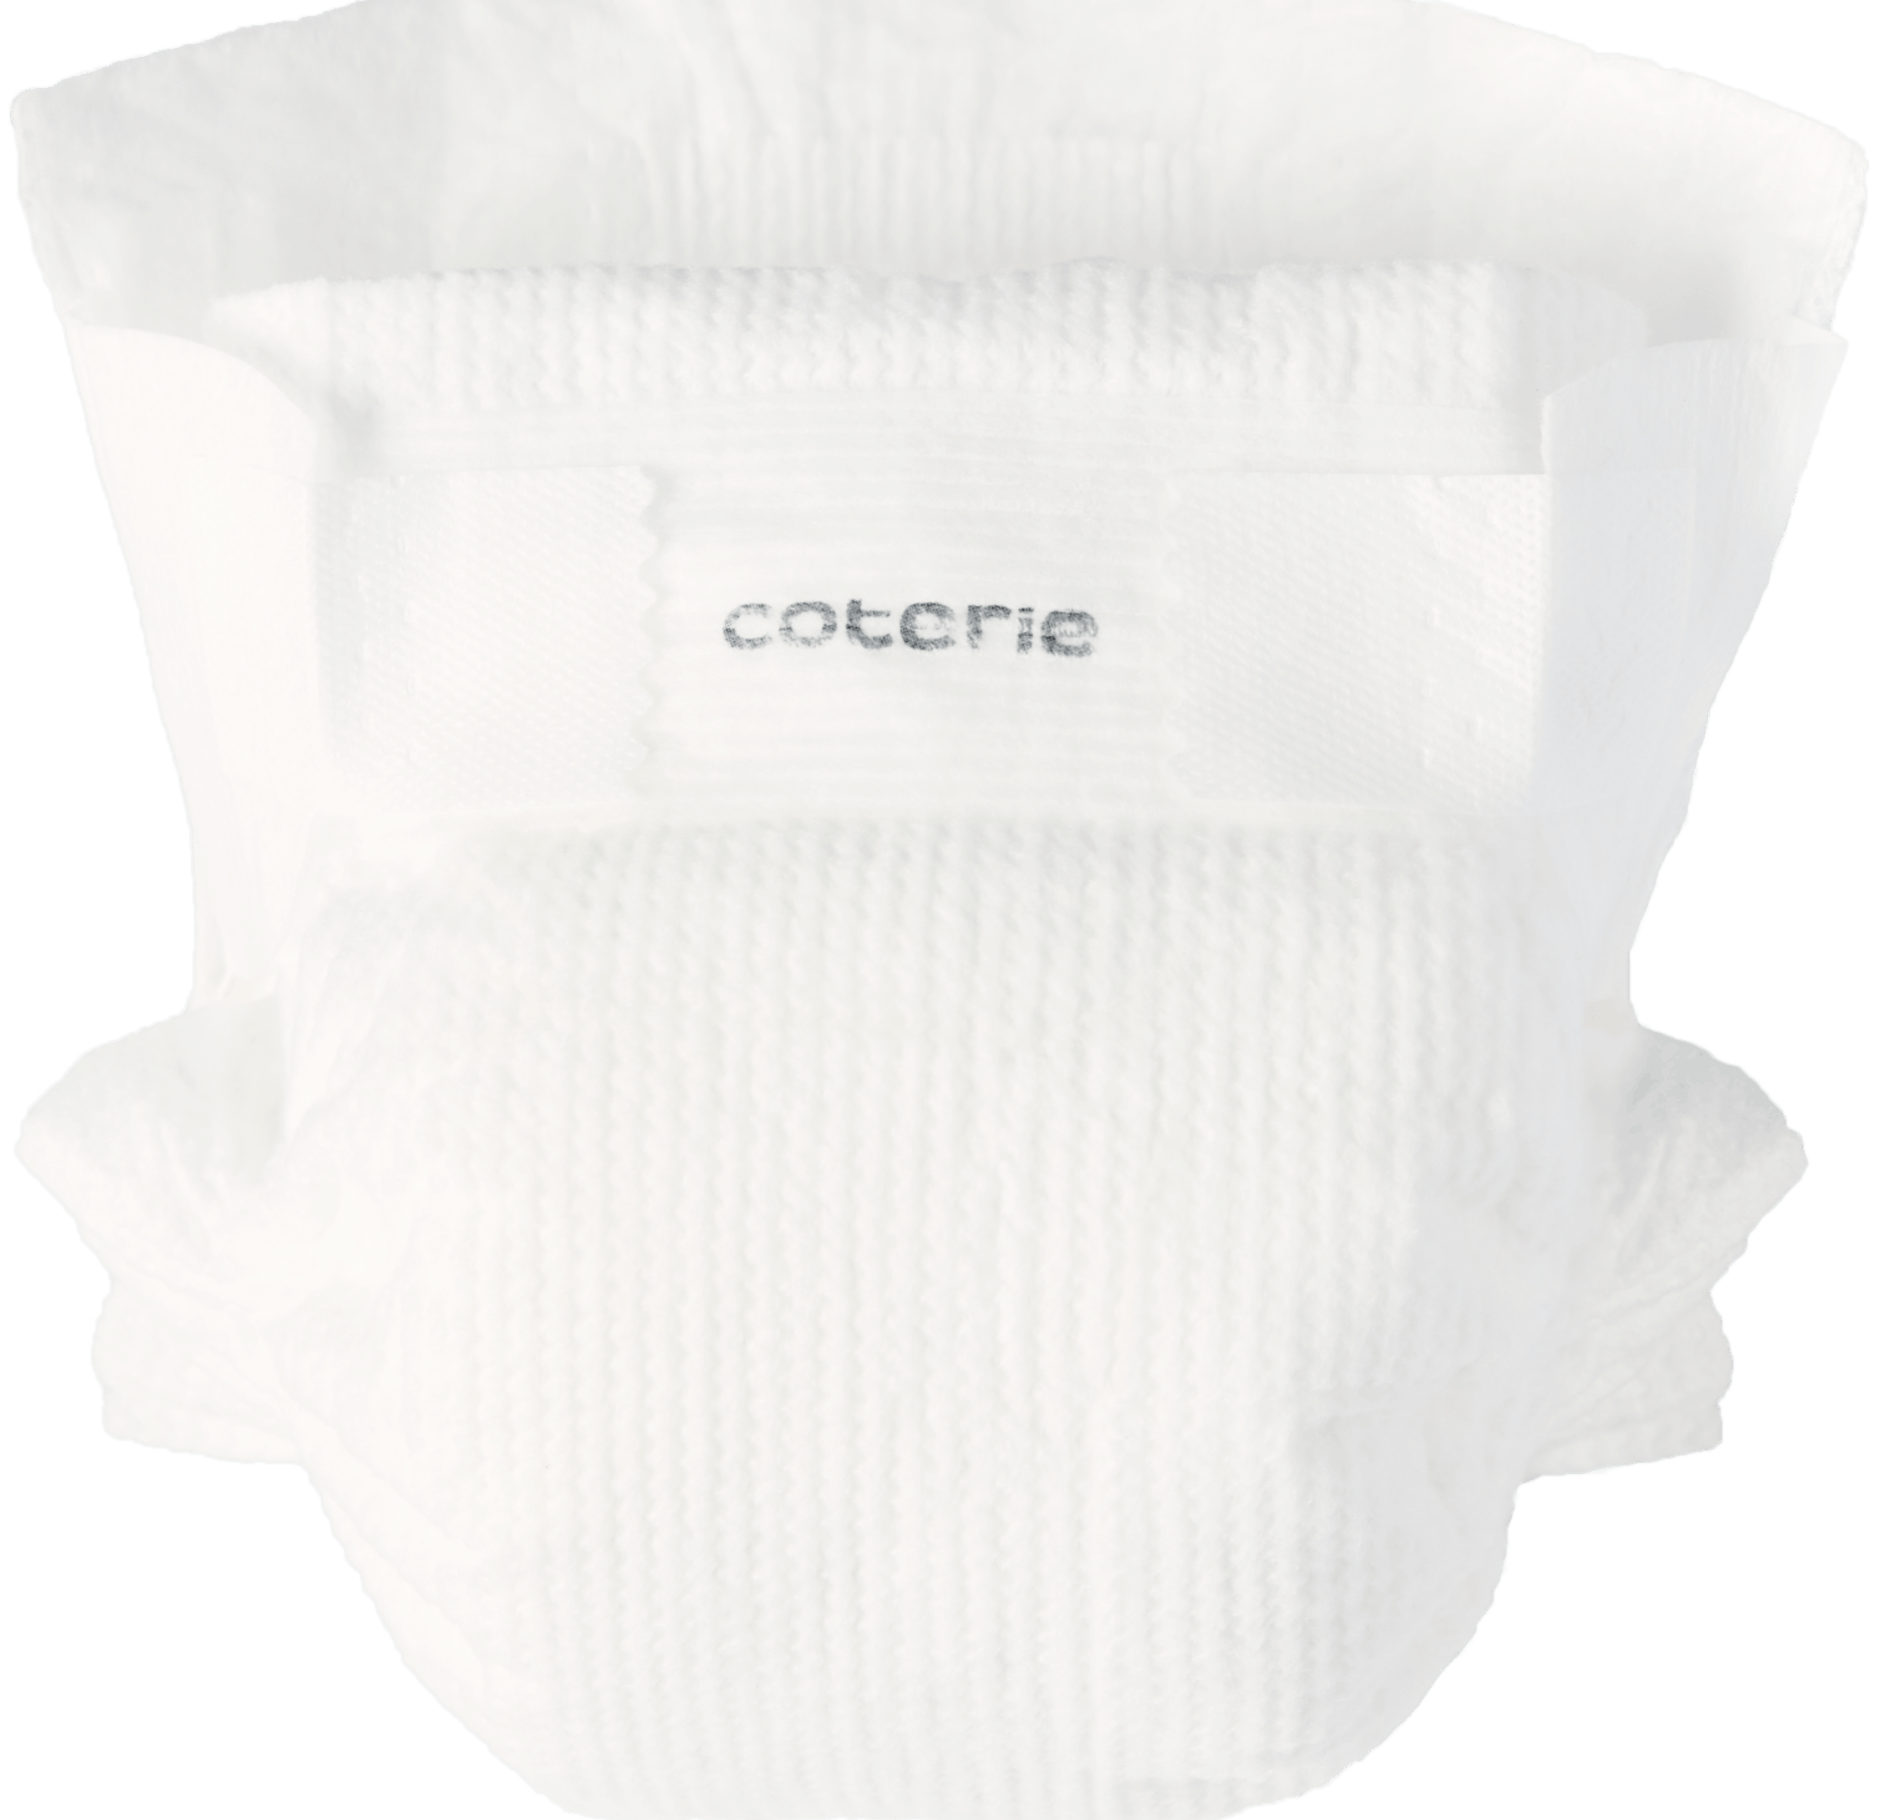 A Coterie diaper, a softer, safer and more absorbent diaper